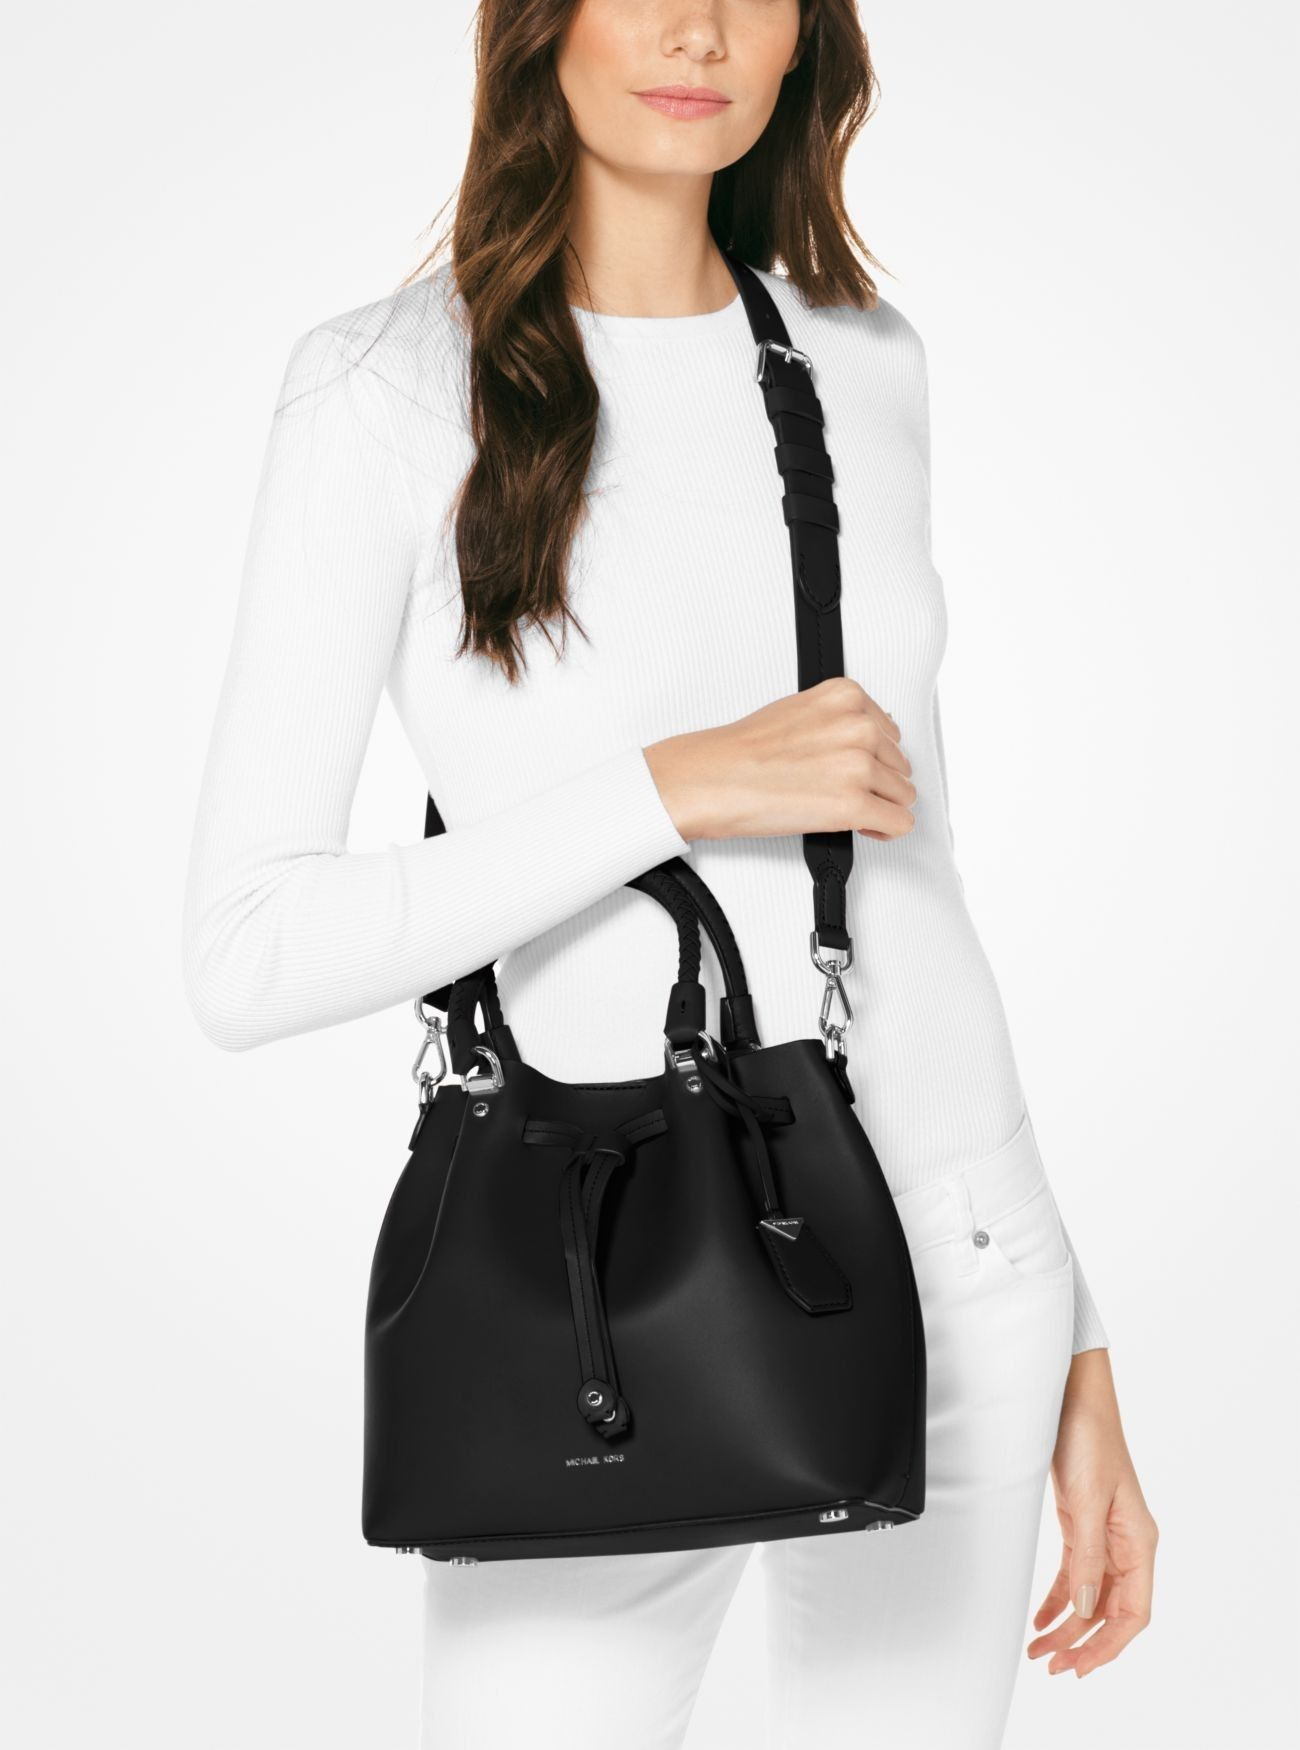 59be0a63c594 2019 的 Online Michael Kors Black Blakely Leather Bucket Bag Sellers ...